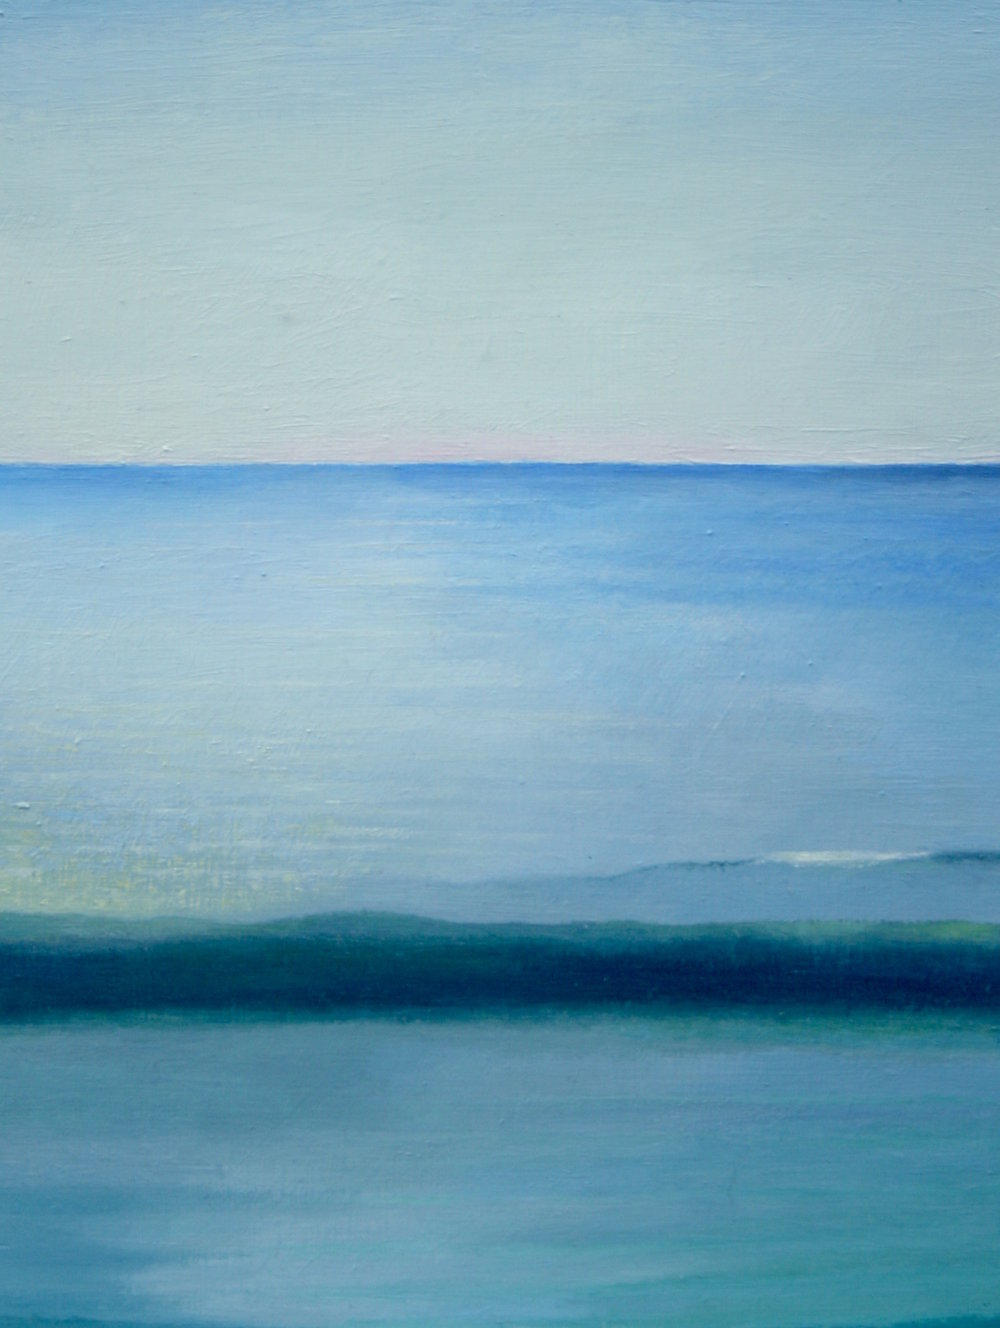 Horizon, 12 x 9 in, Oil on wood, 2015